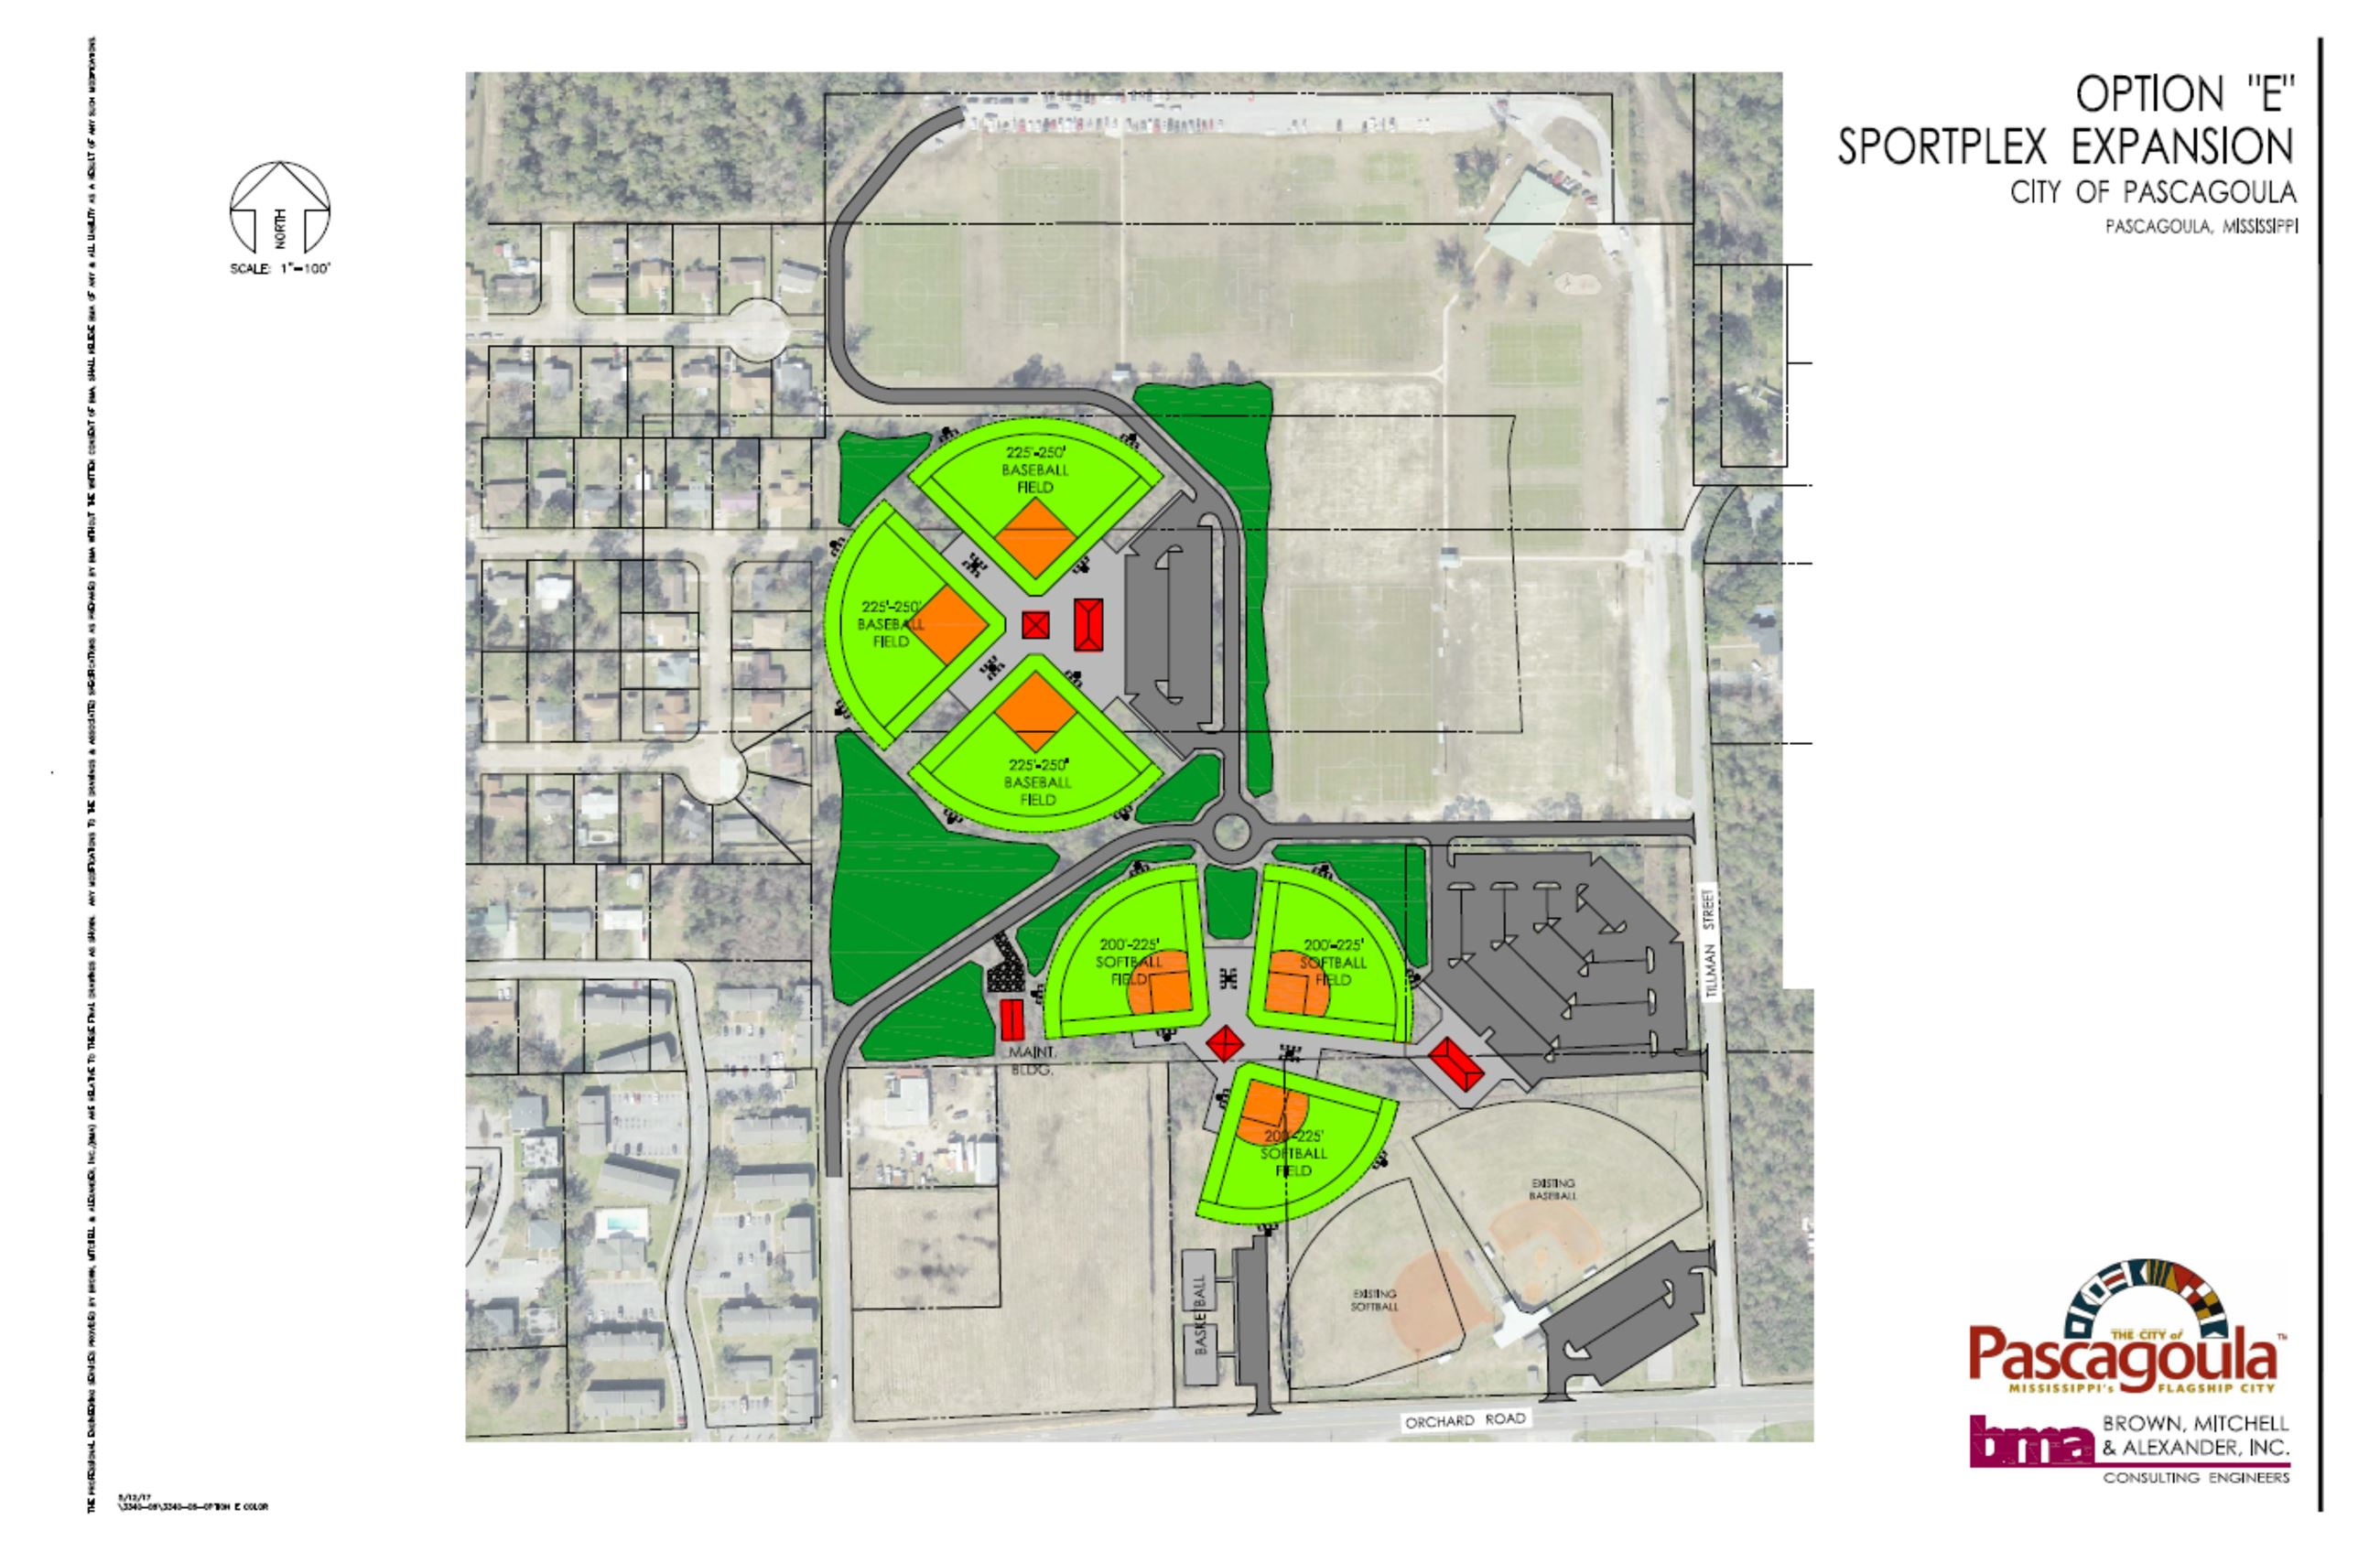 Colored Drawing of Option E of the Sportplex expansion